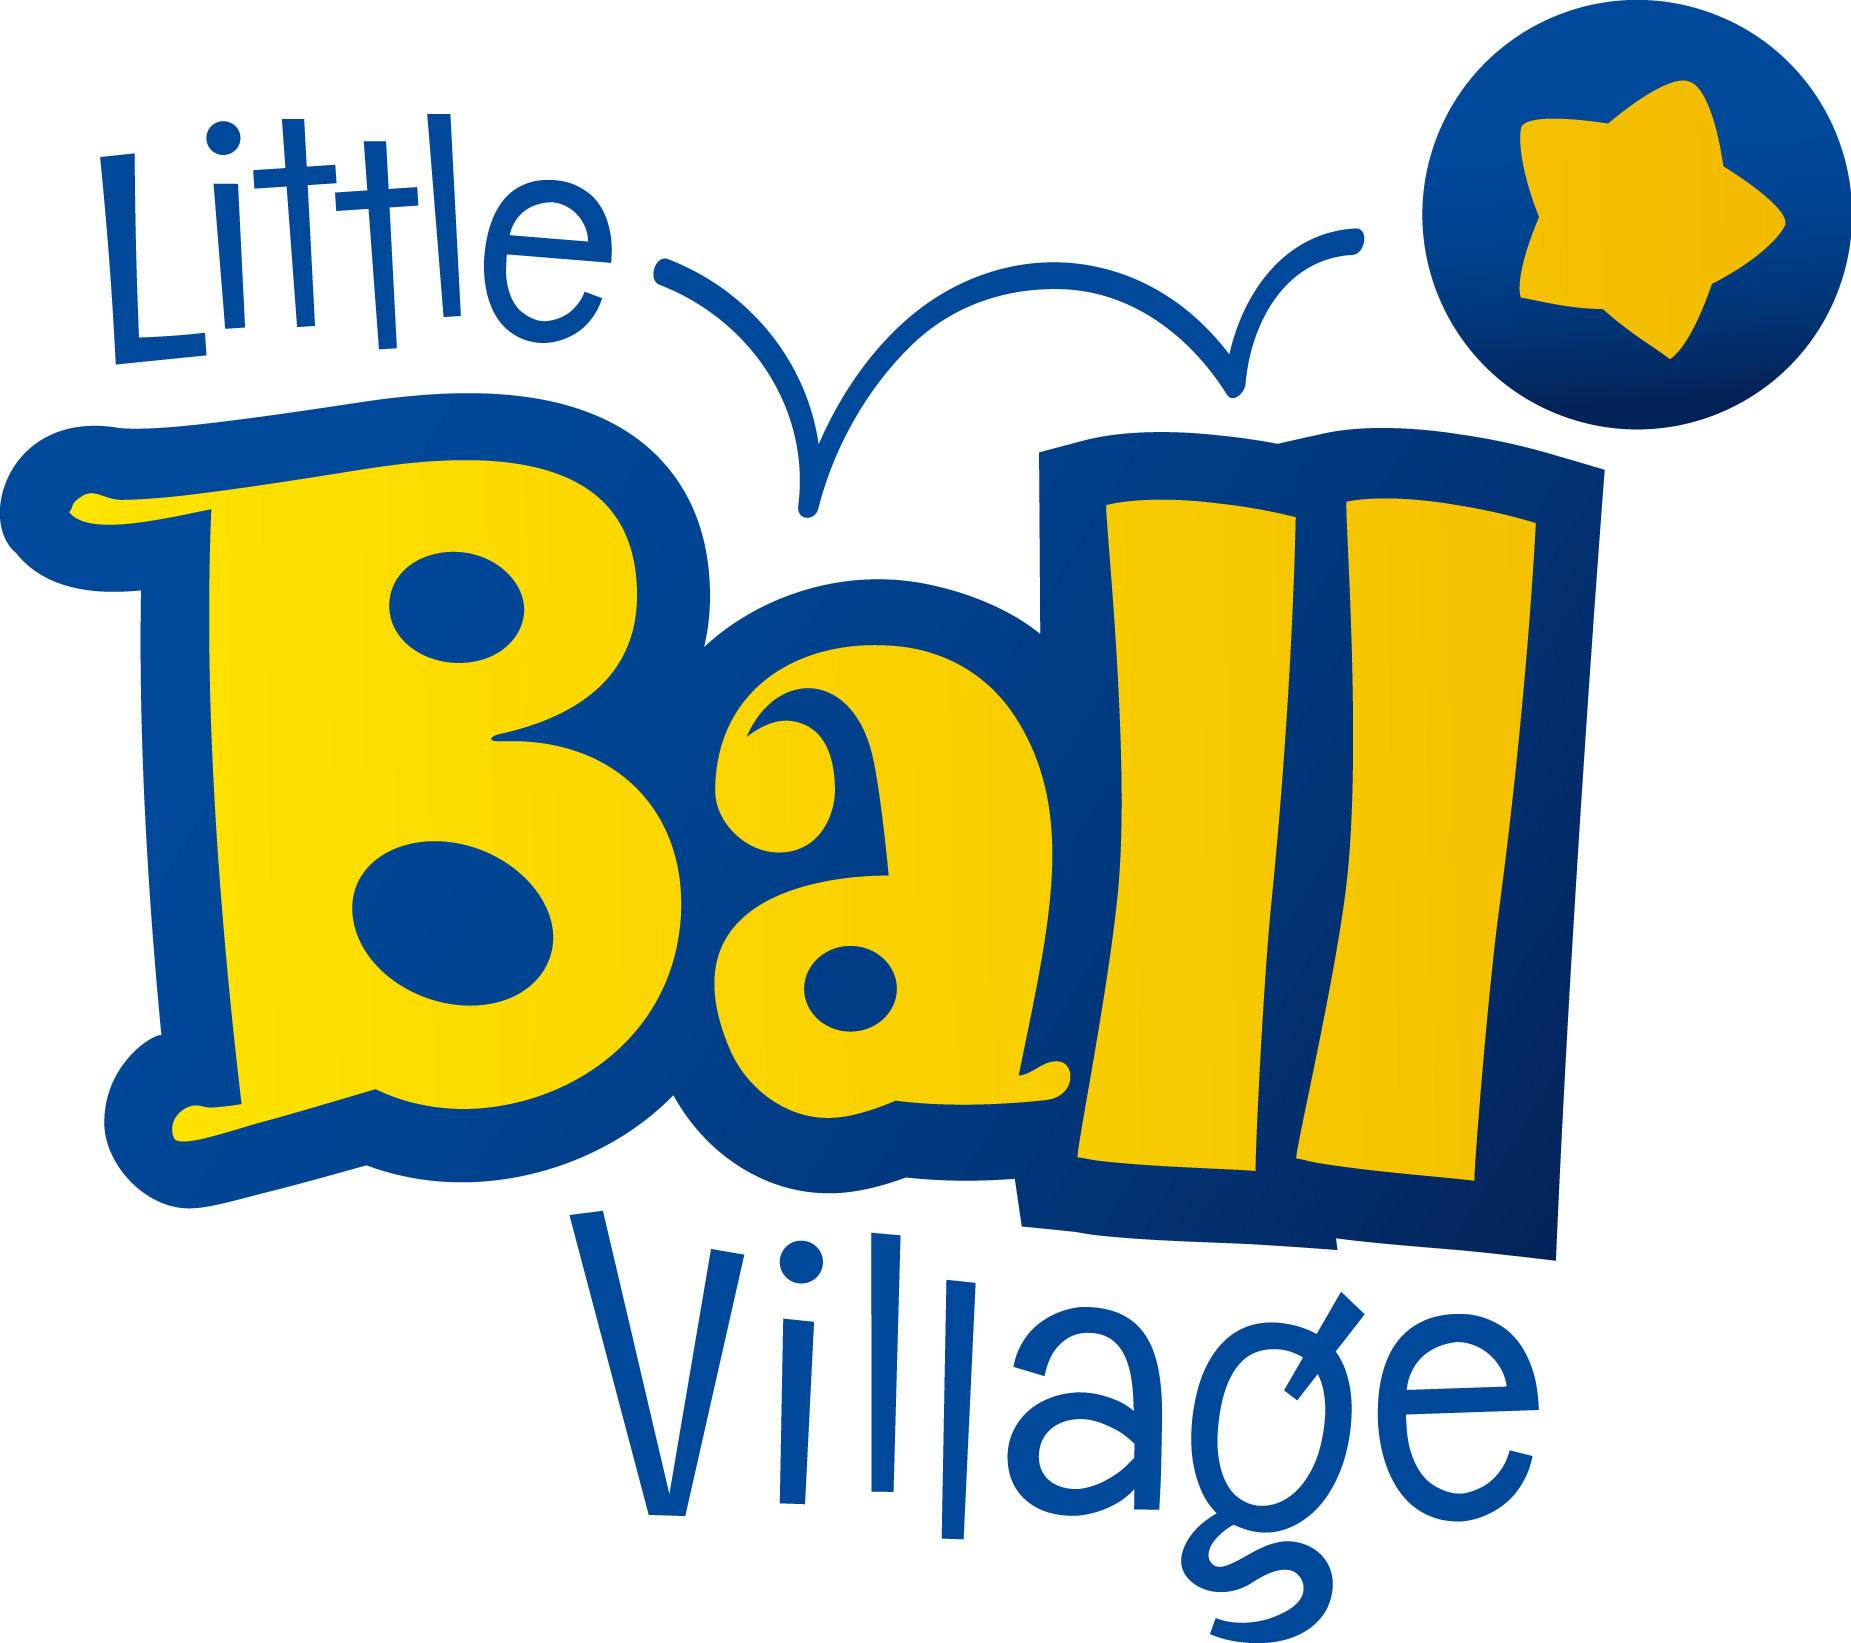 Little Ball Village https://www.littleballvillage.be/